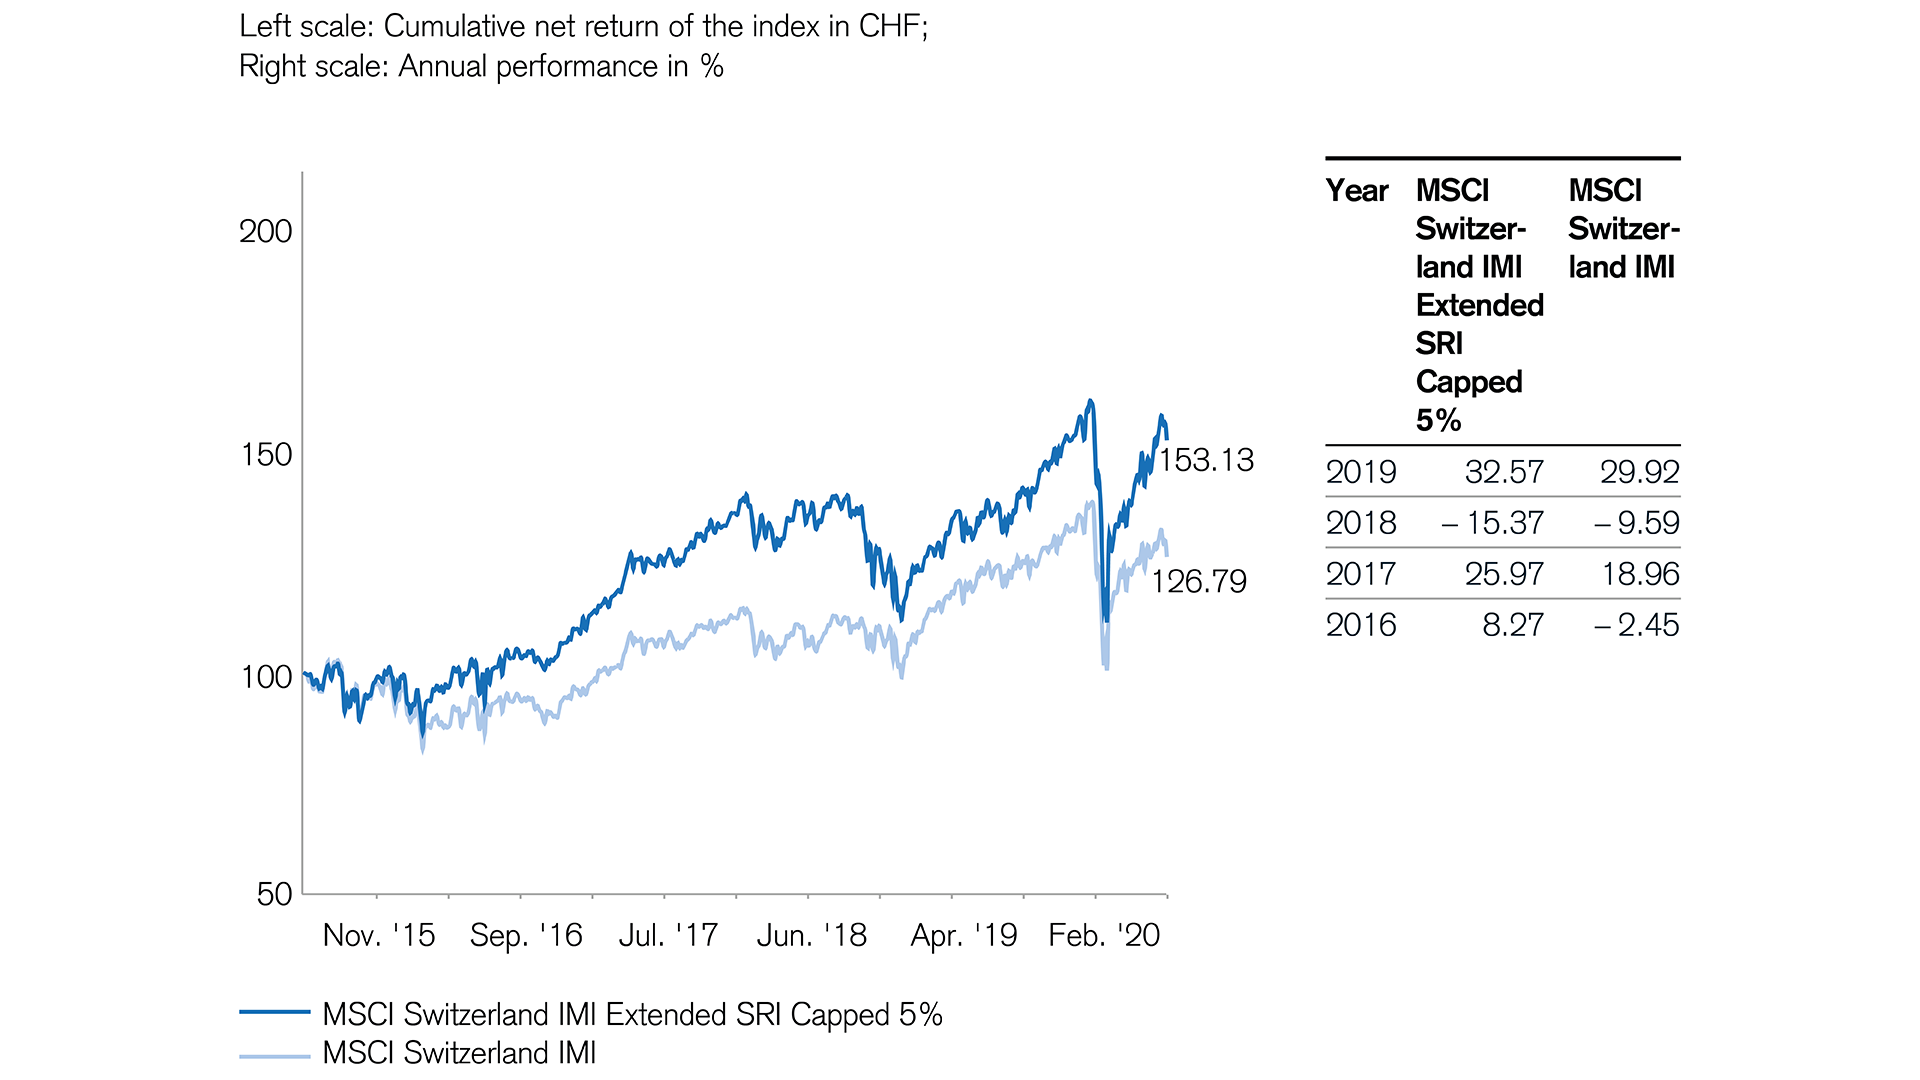 sustainable stocks are performing better in Switzerland too